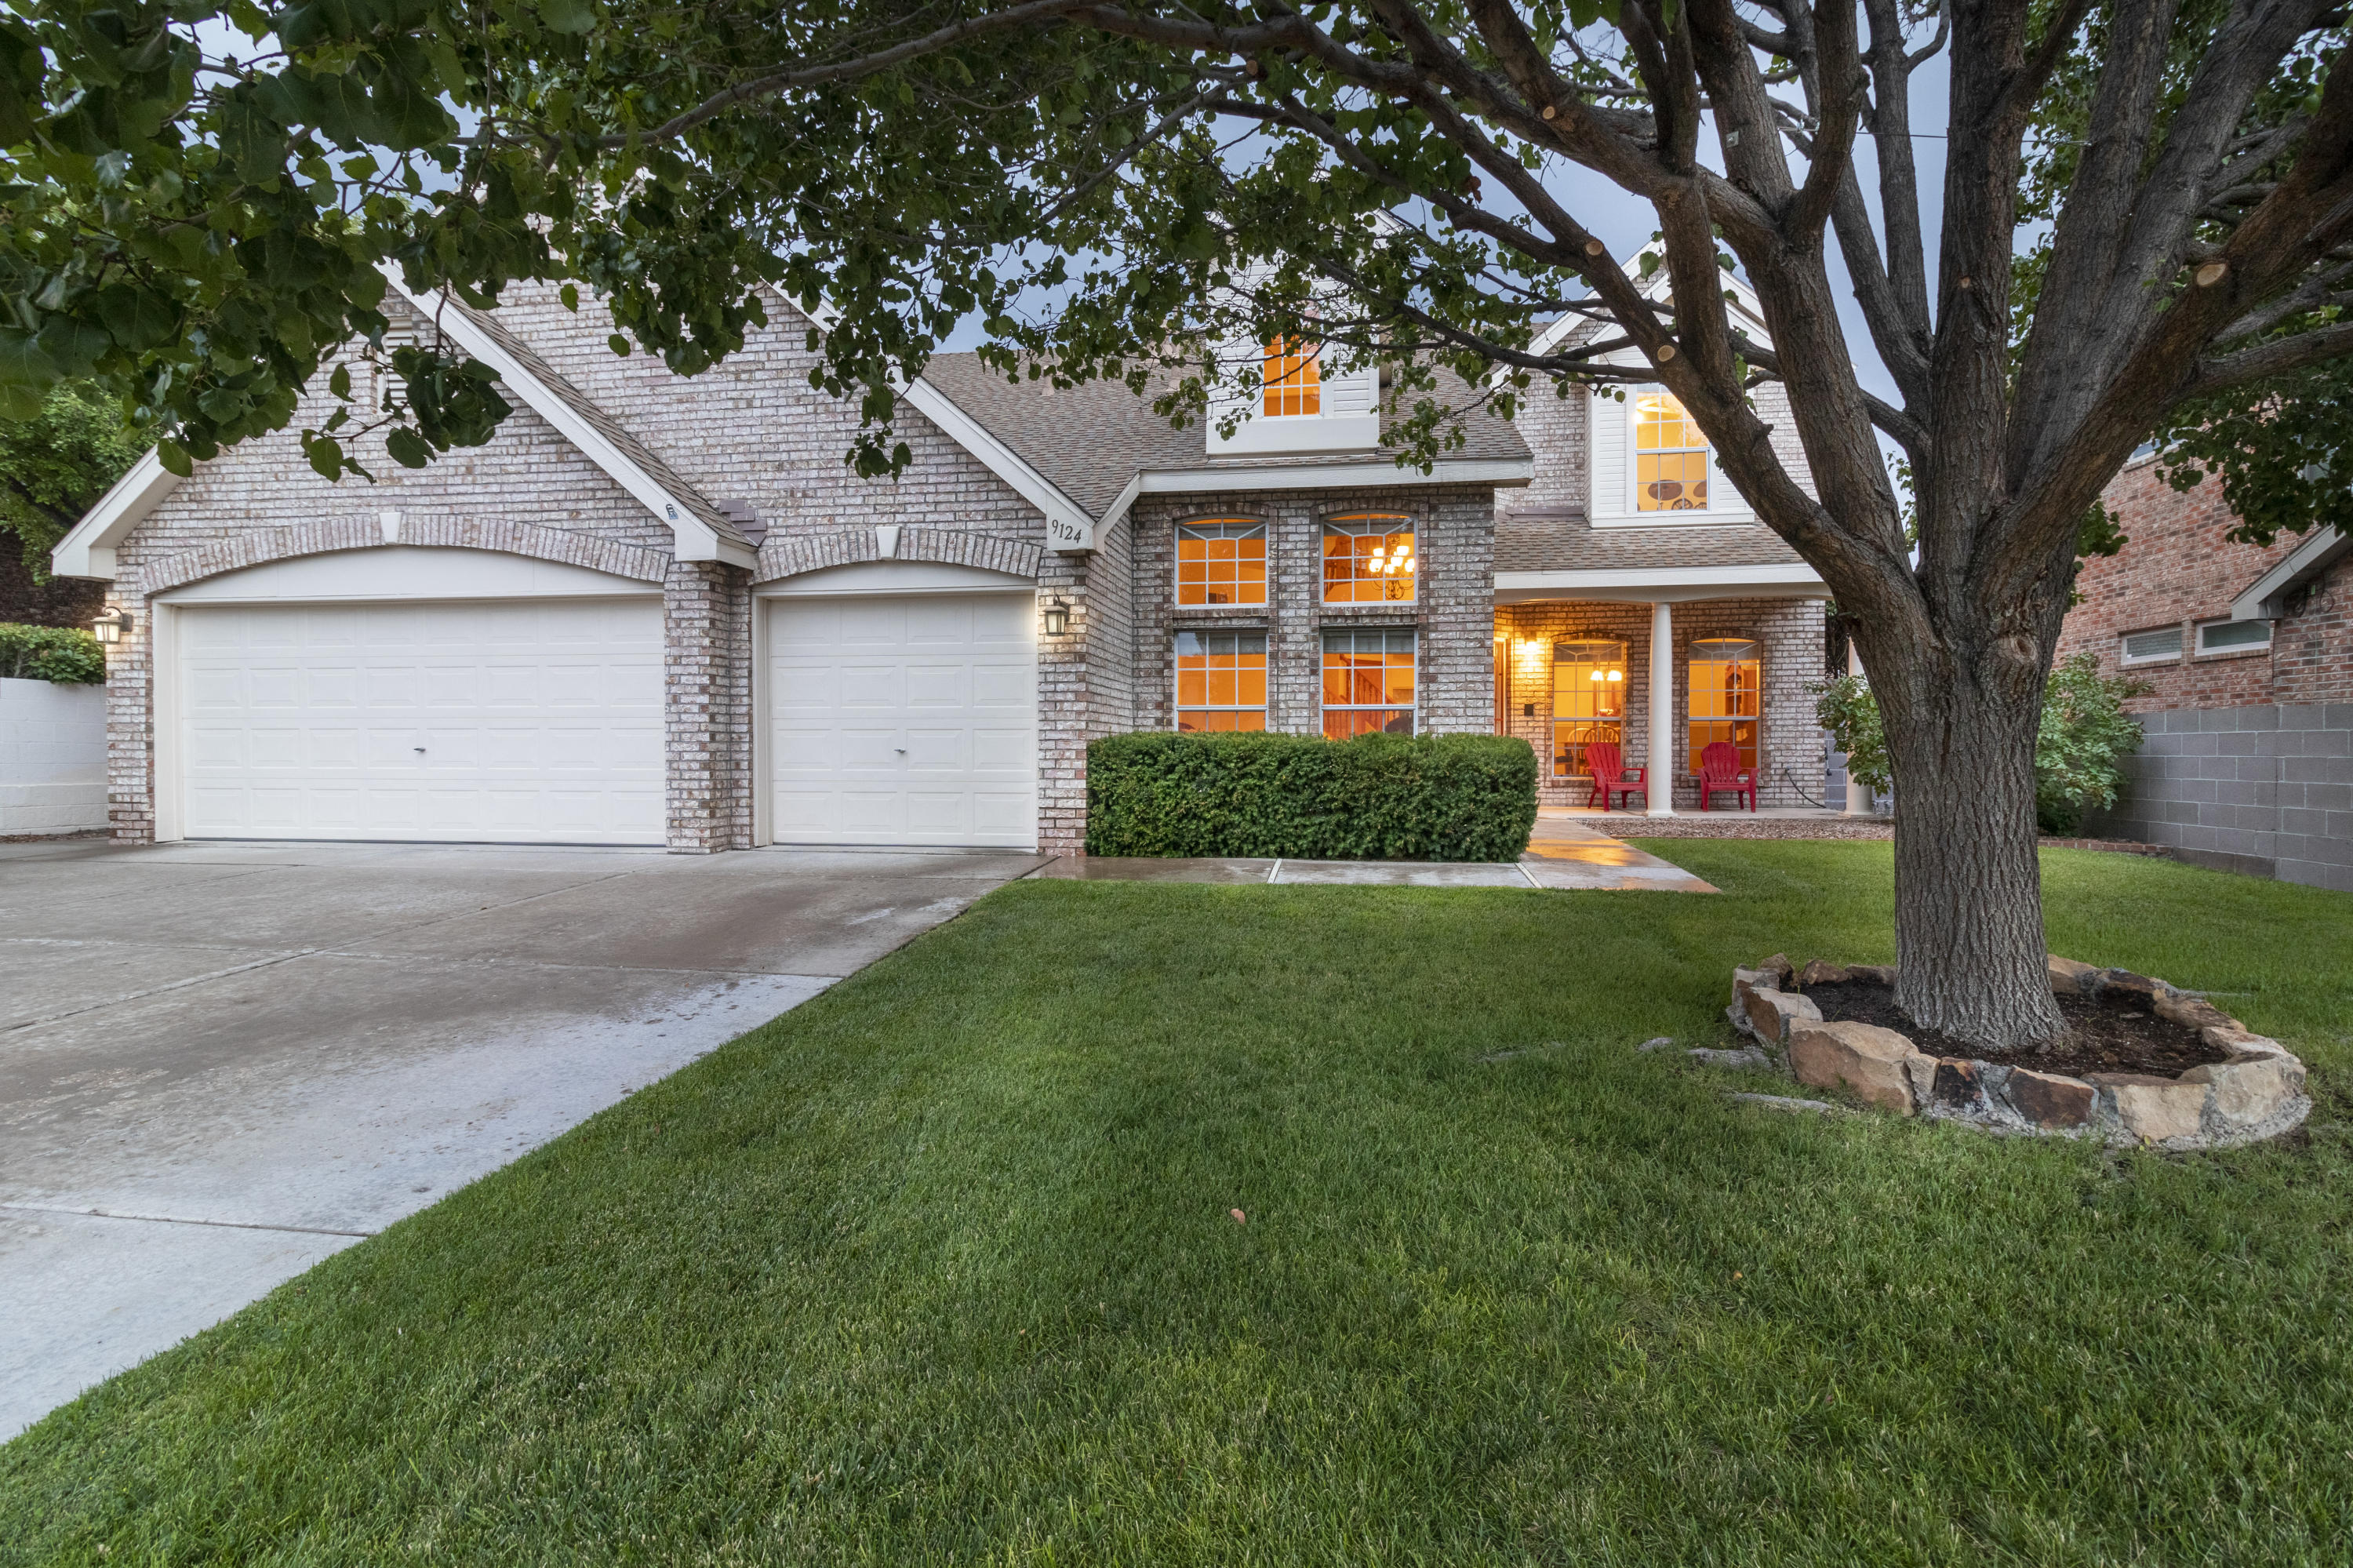 Gorgeous brick, Sivage Thomas home located in the Ridgefield subdivision, in the highly sought after La Cueva school district. This home offers 4 bedrooms (possible 5) with 3 1/2 bathrooms, 3 car garage, Gourmet kitchen and the Primary Suite located on the main floor. Two, 2019 gas furnaces and two, 2020 evaporative coolers as well as water softener multiply the level of comfort you'll find when entering this home. The backyard offers a large, covered patio that provides privacy and creates a perfect place to sit back and take in the amazing mountain views. This home backs up to a quiet arroyo and is walking distance to several parks. Both hiking and biking paths are just minutes away. Absolutely terrific location, a definite must see